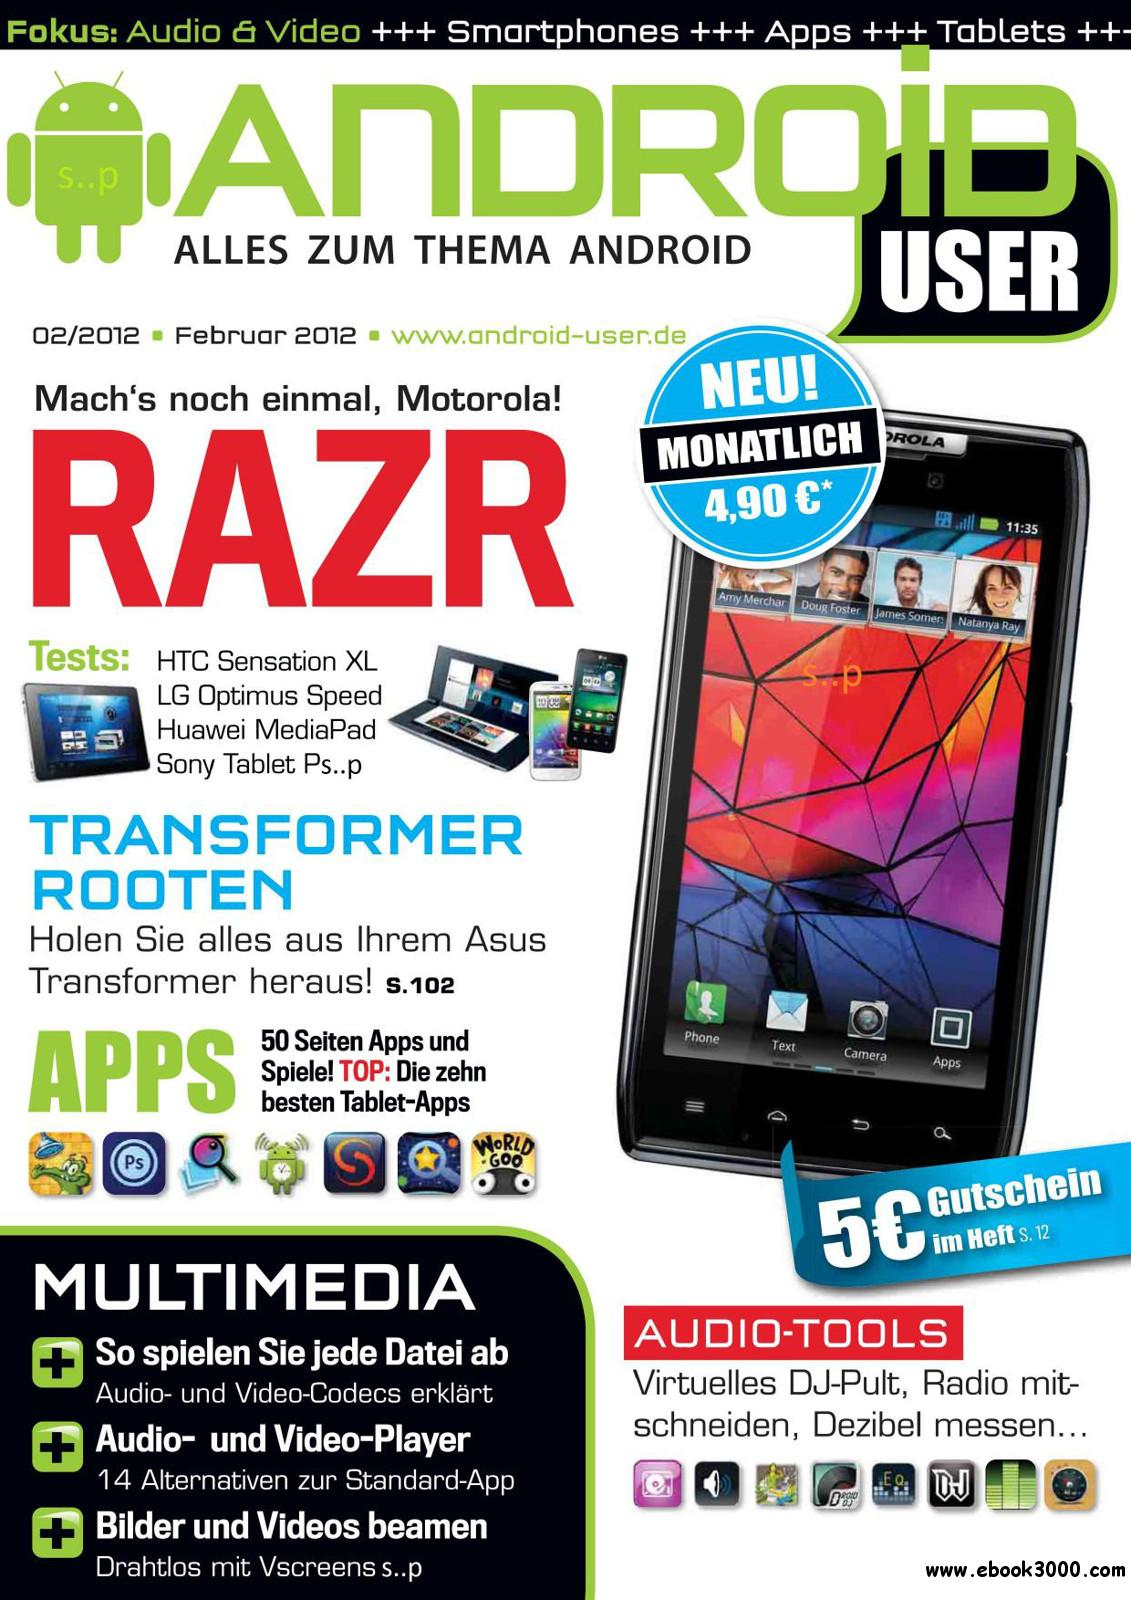 Android User Magazin - Februar 2012 free download